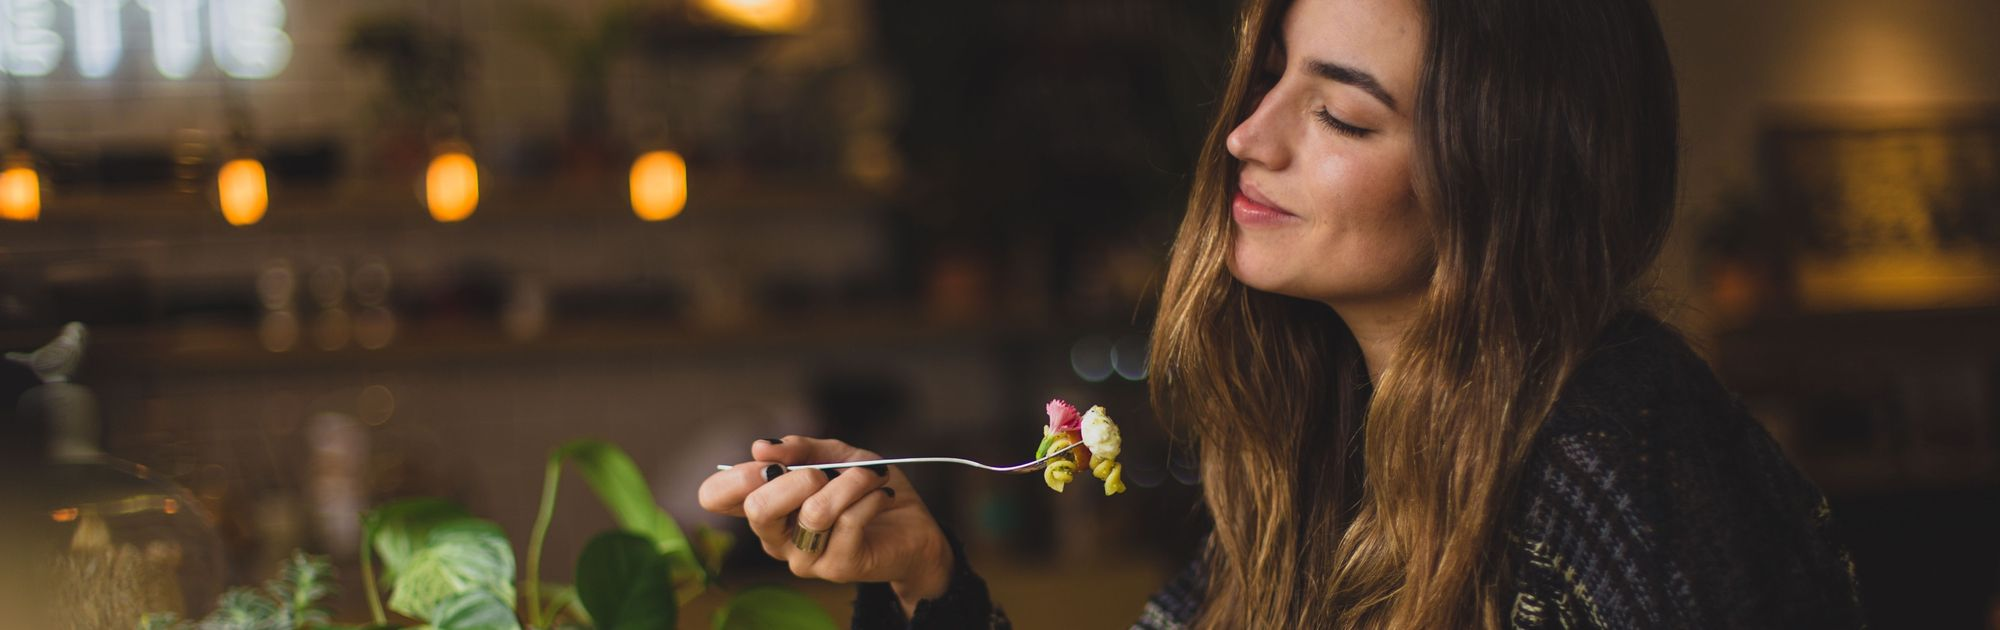 Mindful eating o alimentación consciente